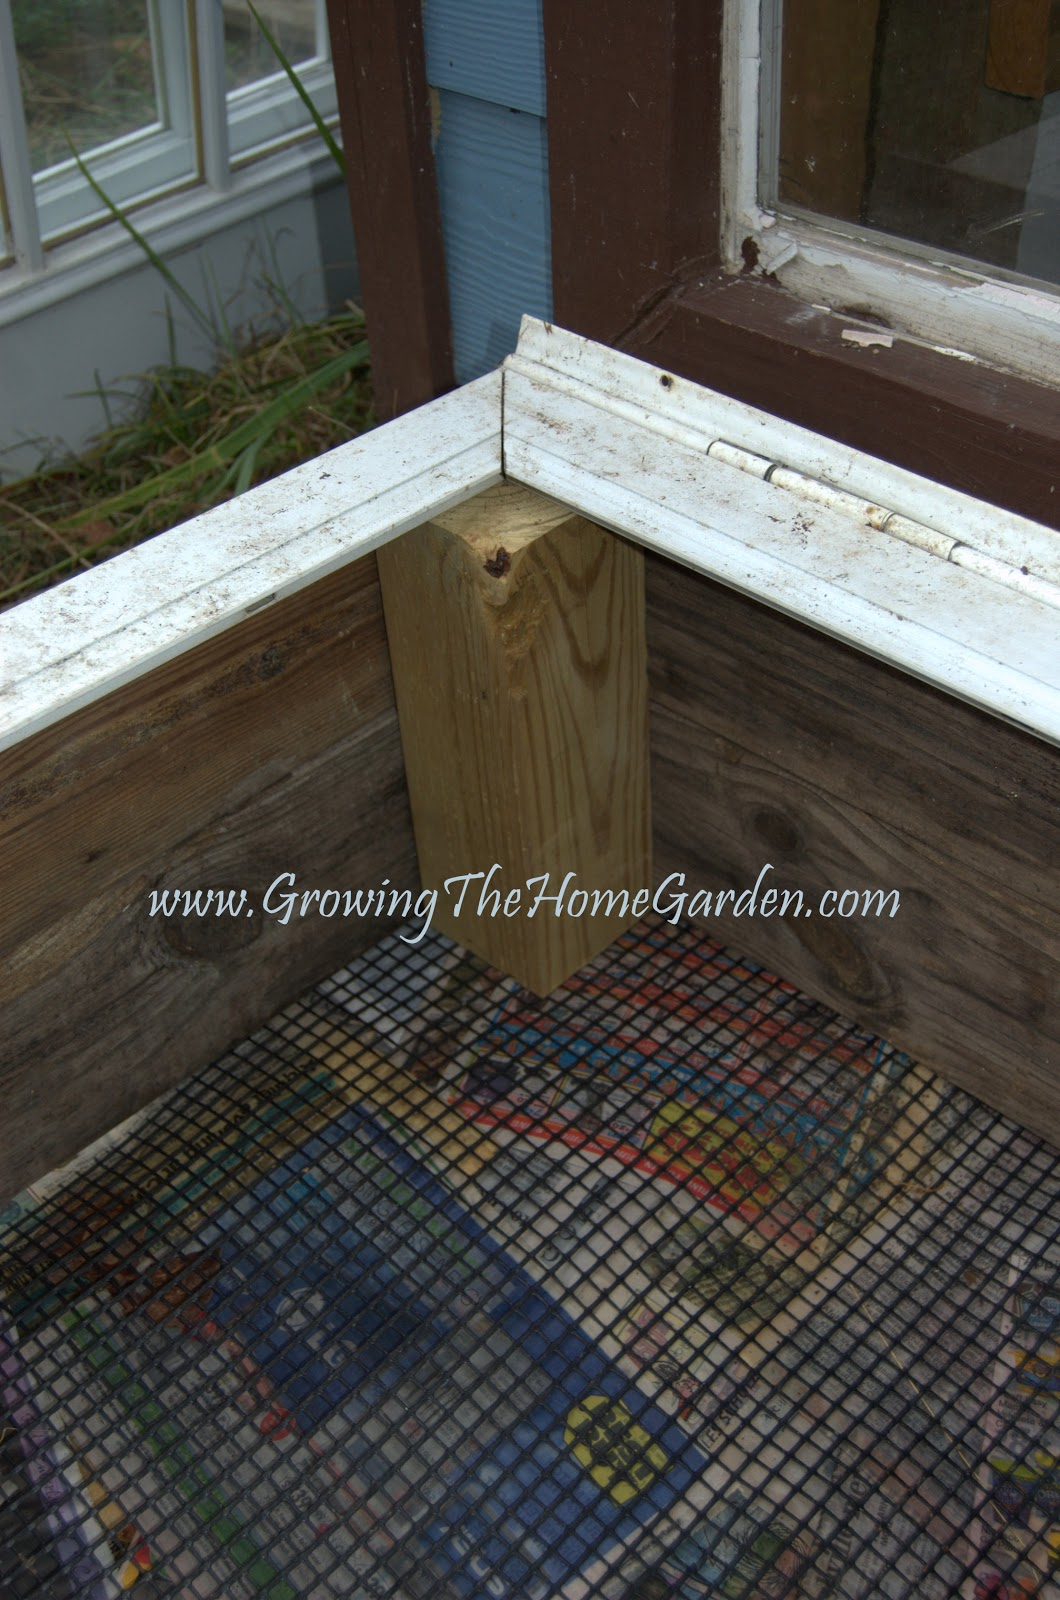 Reusing Materials for a Cold Frame - Growing The Home Garden